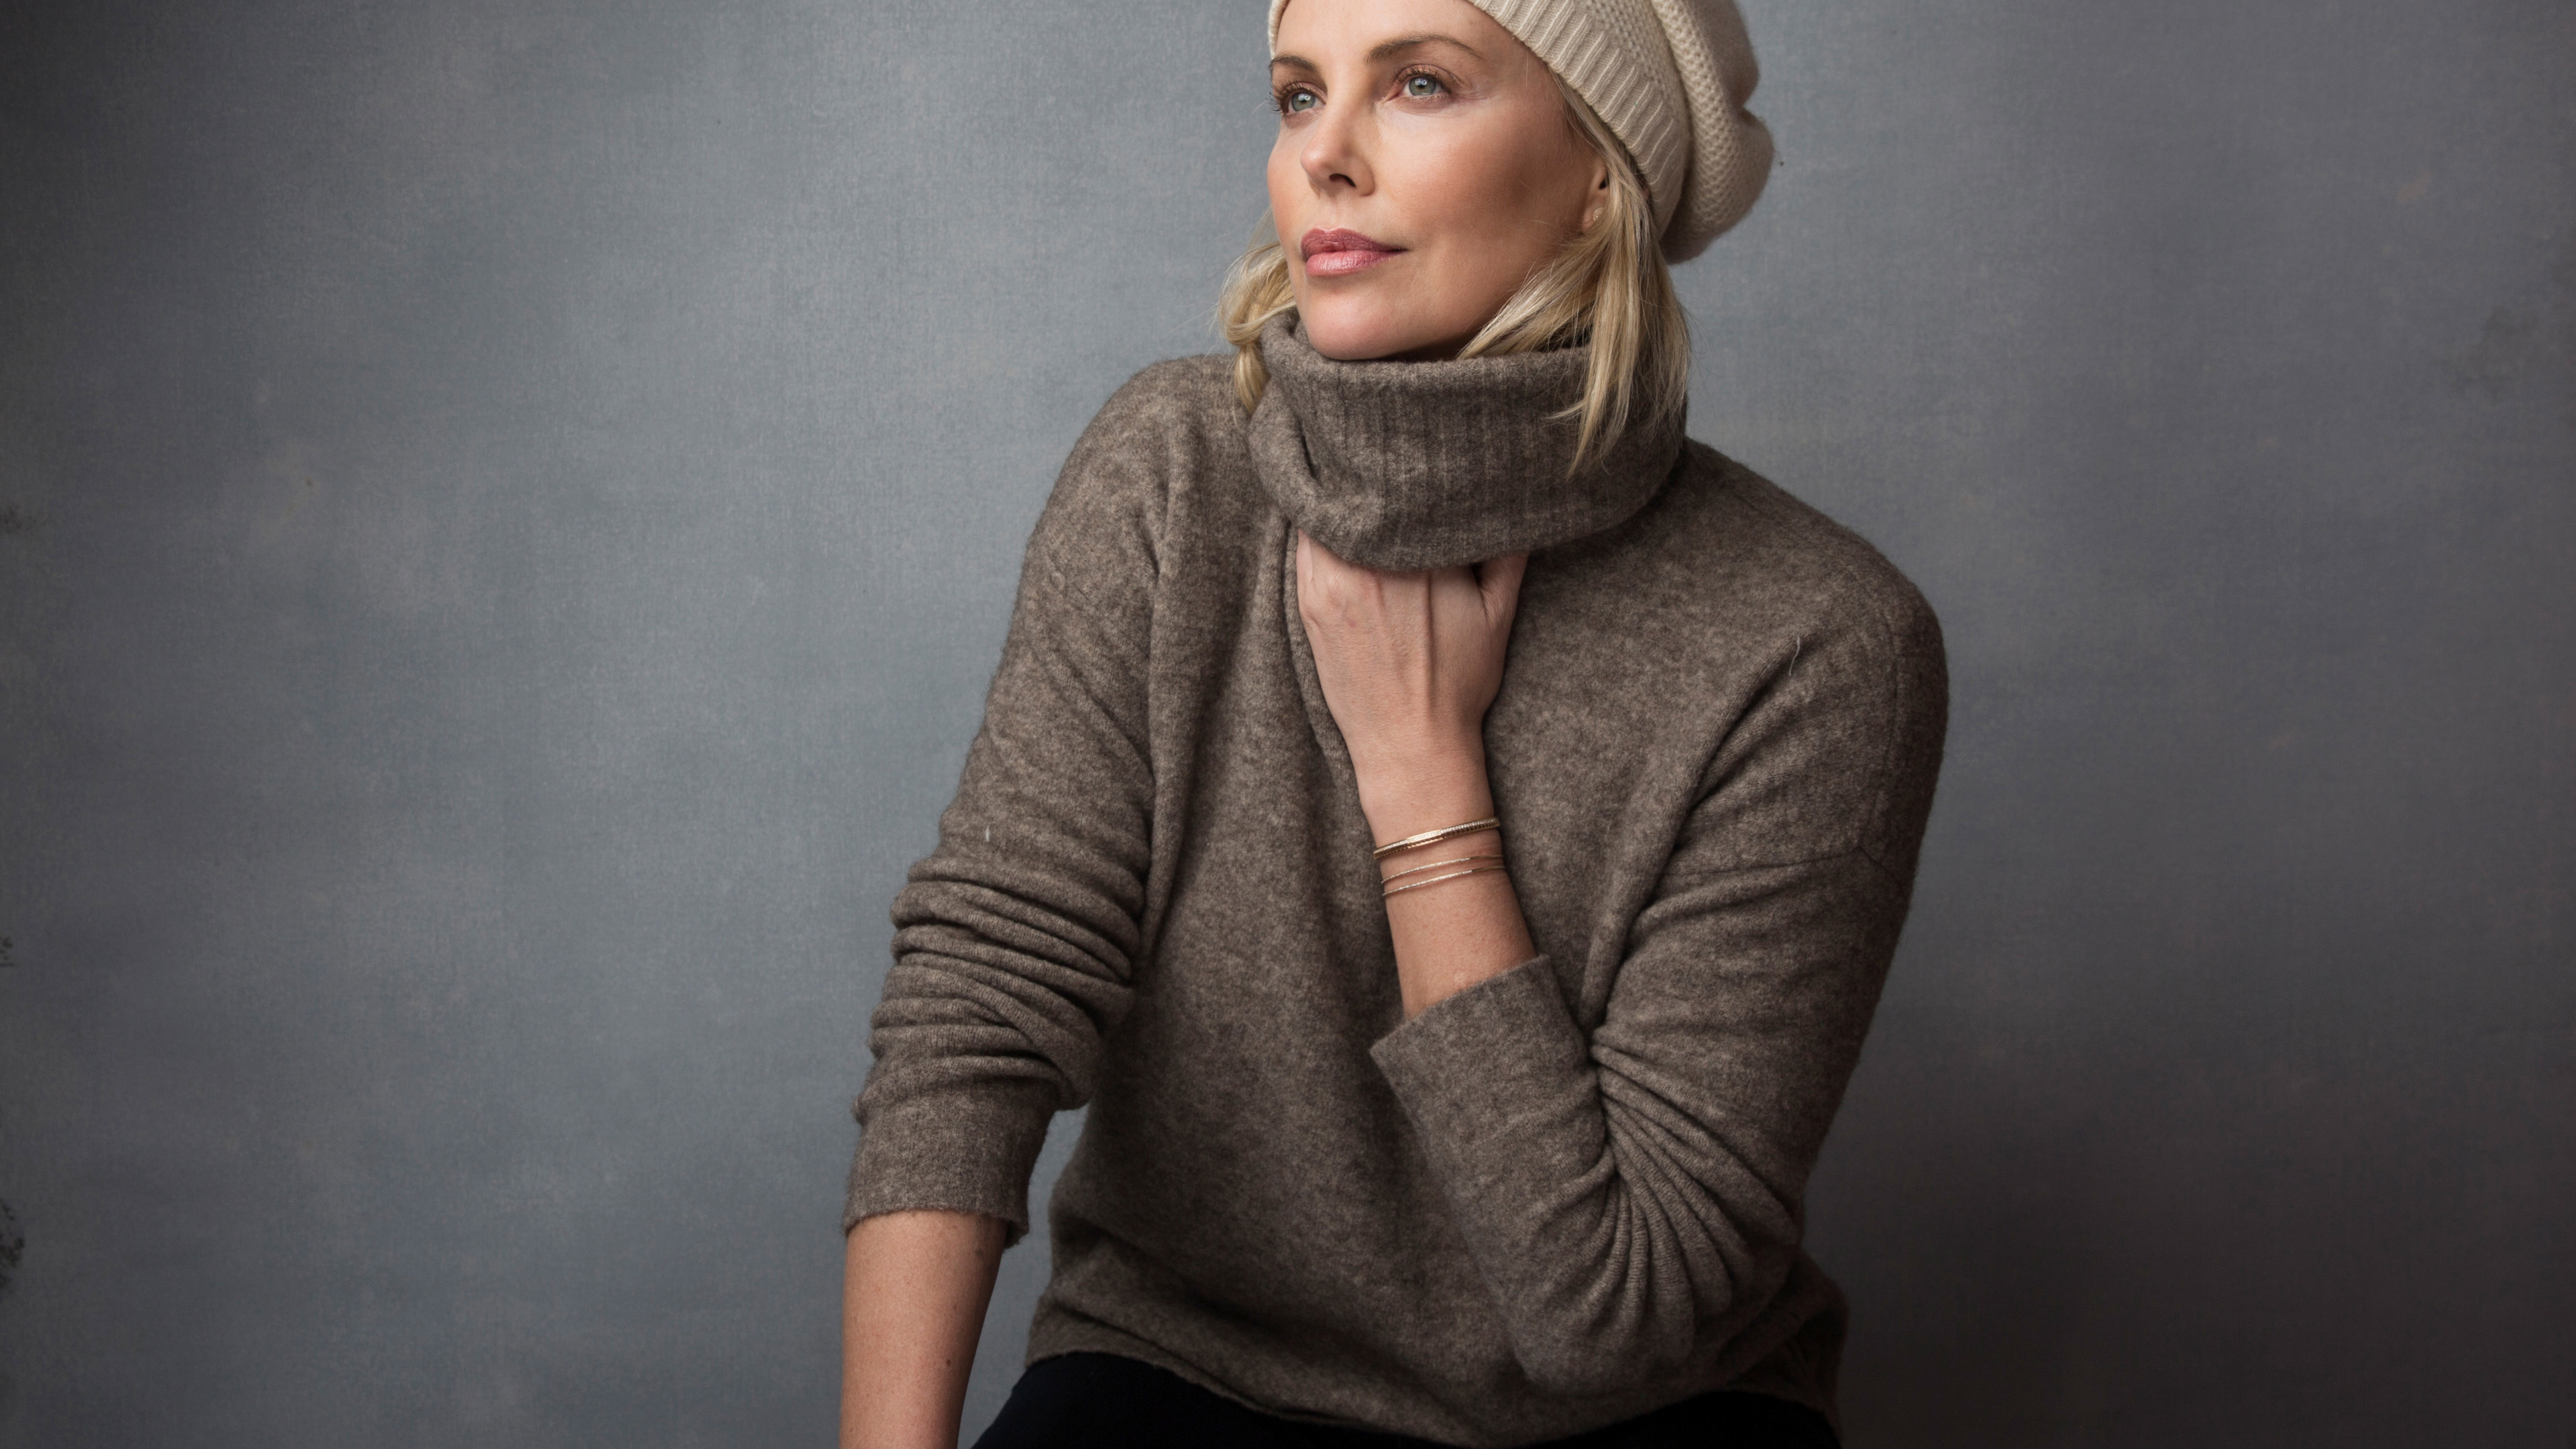 charlize theron sundance 2017 1536859948 - Charlize Theron Sundance 2017 - hd-wallpapers, hd wallpapers4k wallpapers, girls wallpapers, charlize theron wallpapers, celebrities wallpapers